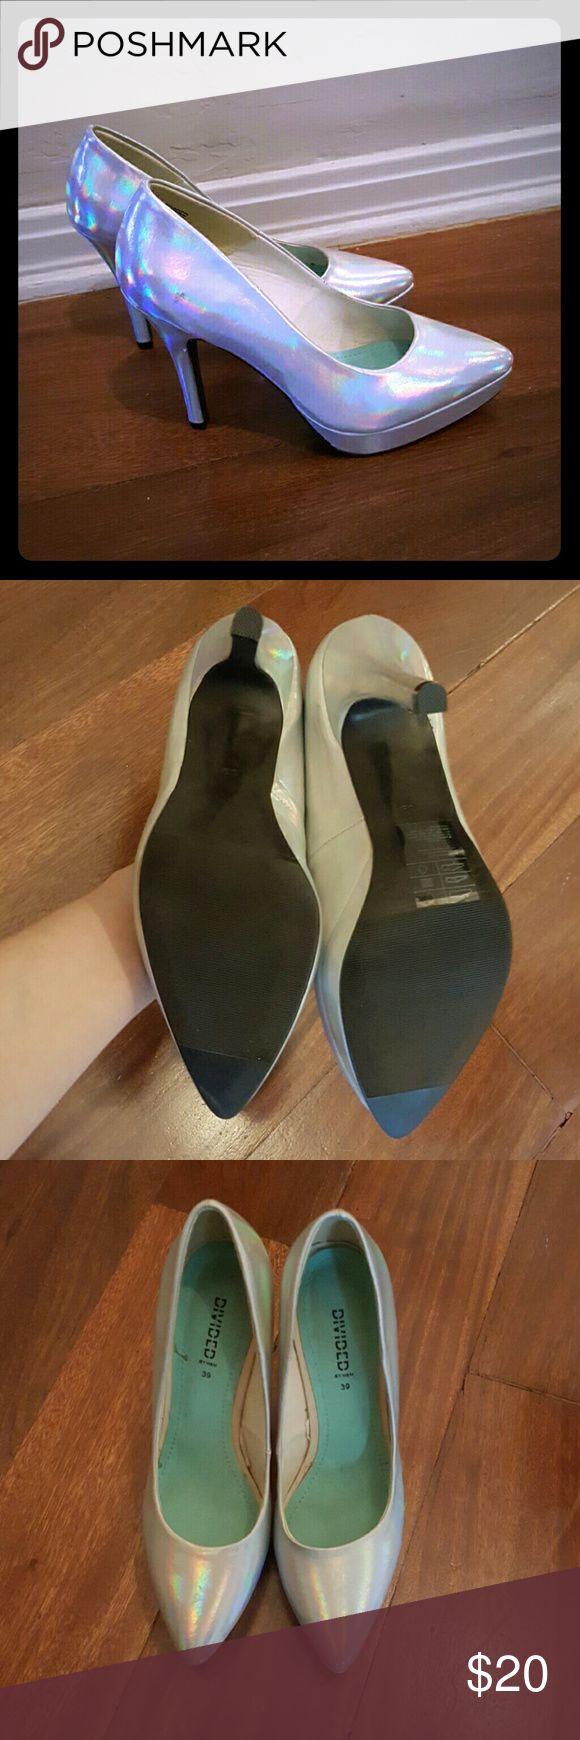 Holographic Silver Heels These smashing heels are in excellent shape. Have only been worn on stage once and never again. Divided Shoes Heels